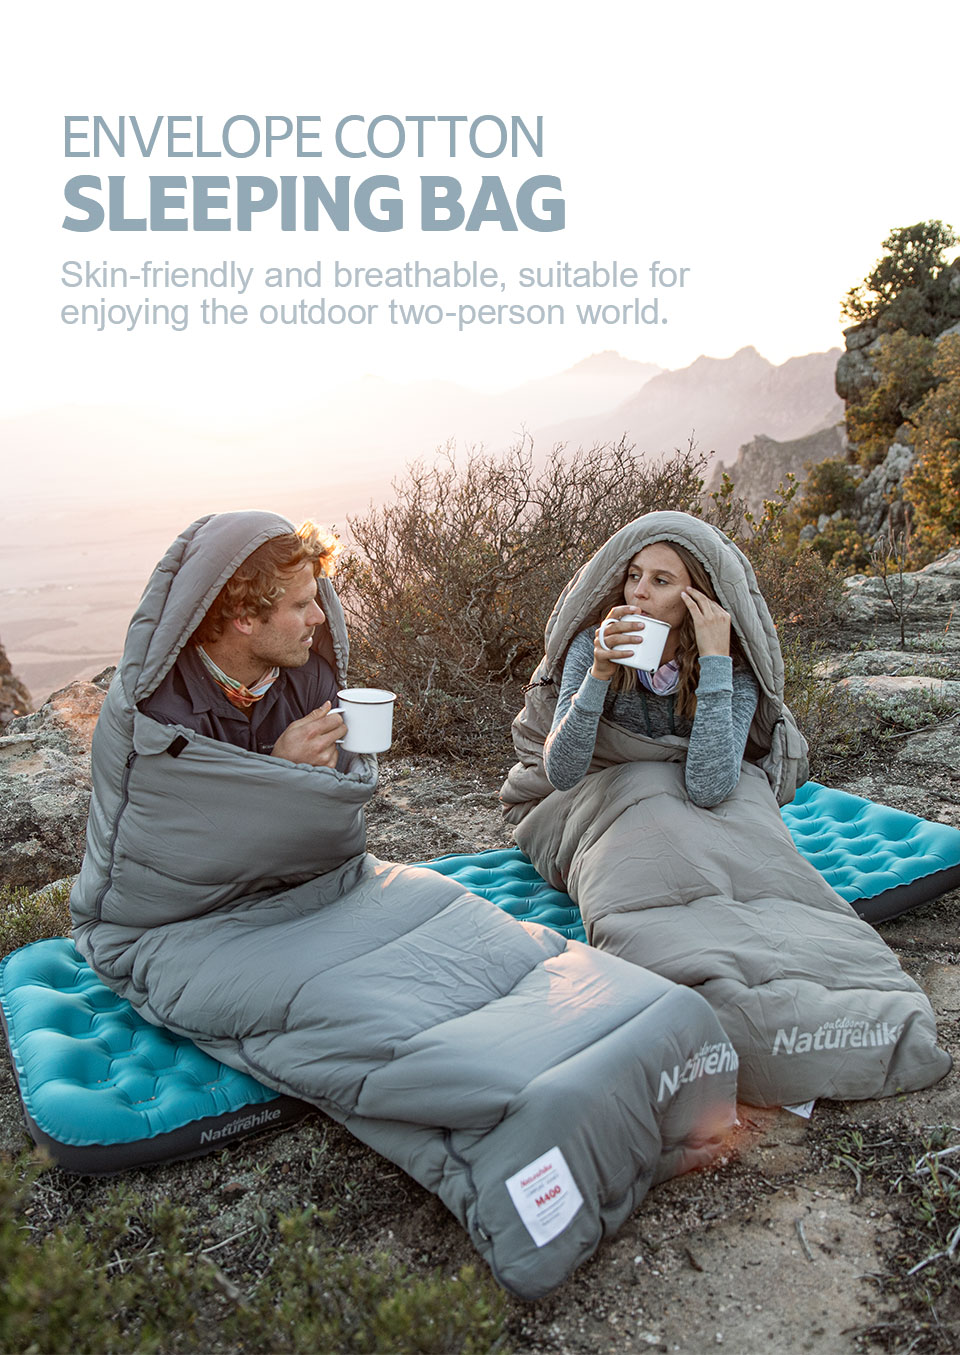 Naturehike 2021 New Arrive Ultralight Splice Envelope Cotton Sleeping Bag Can Be Machine Cleaned With Cap Sleeping Bag